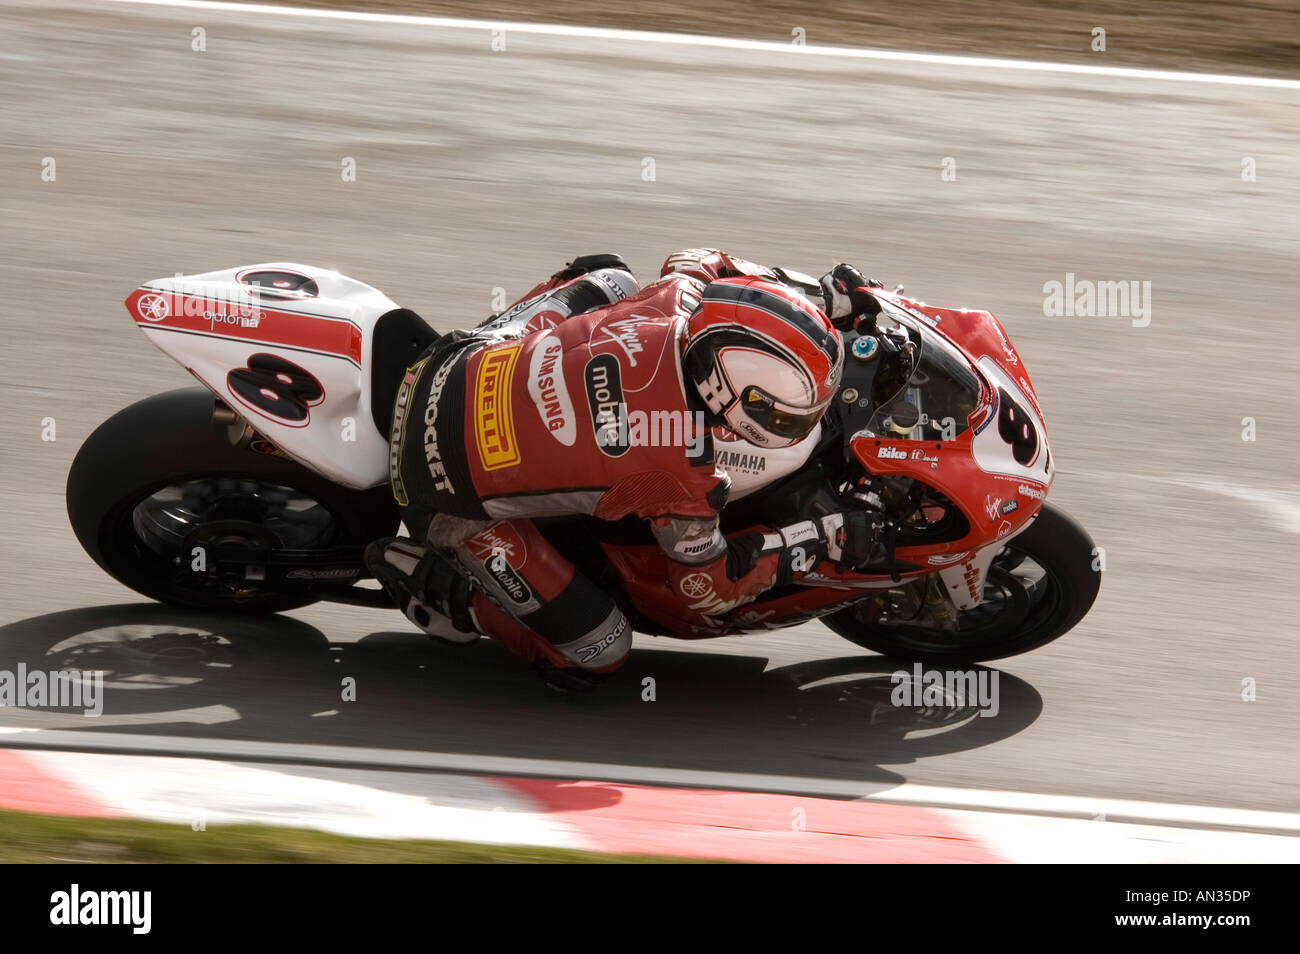 0dfc0b7b Tommy Hill British Superbike Racer at Brands Hatch 2006 - Stock Image